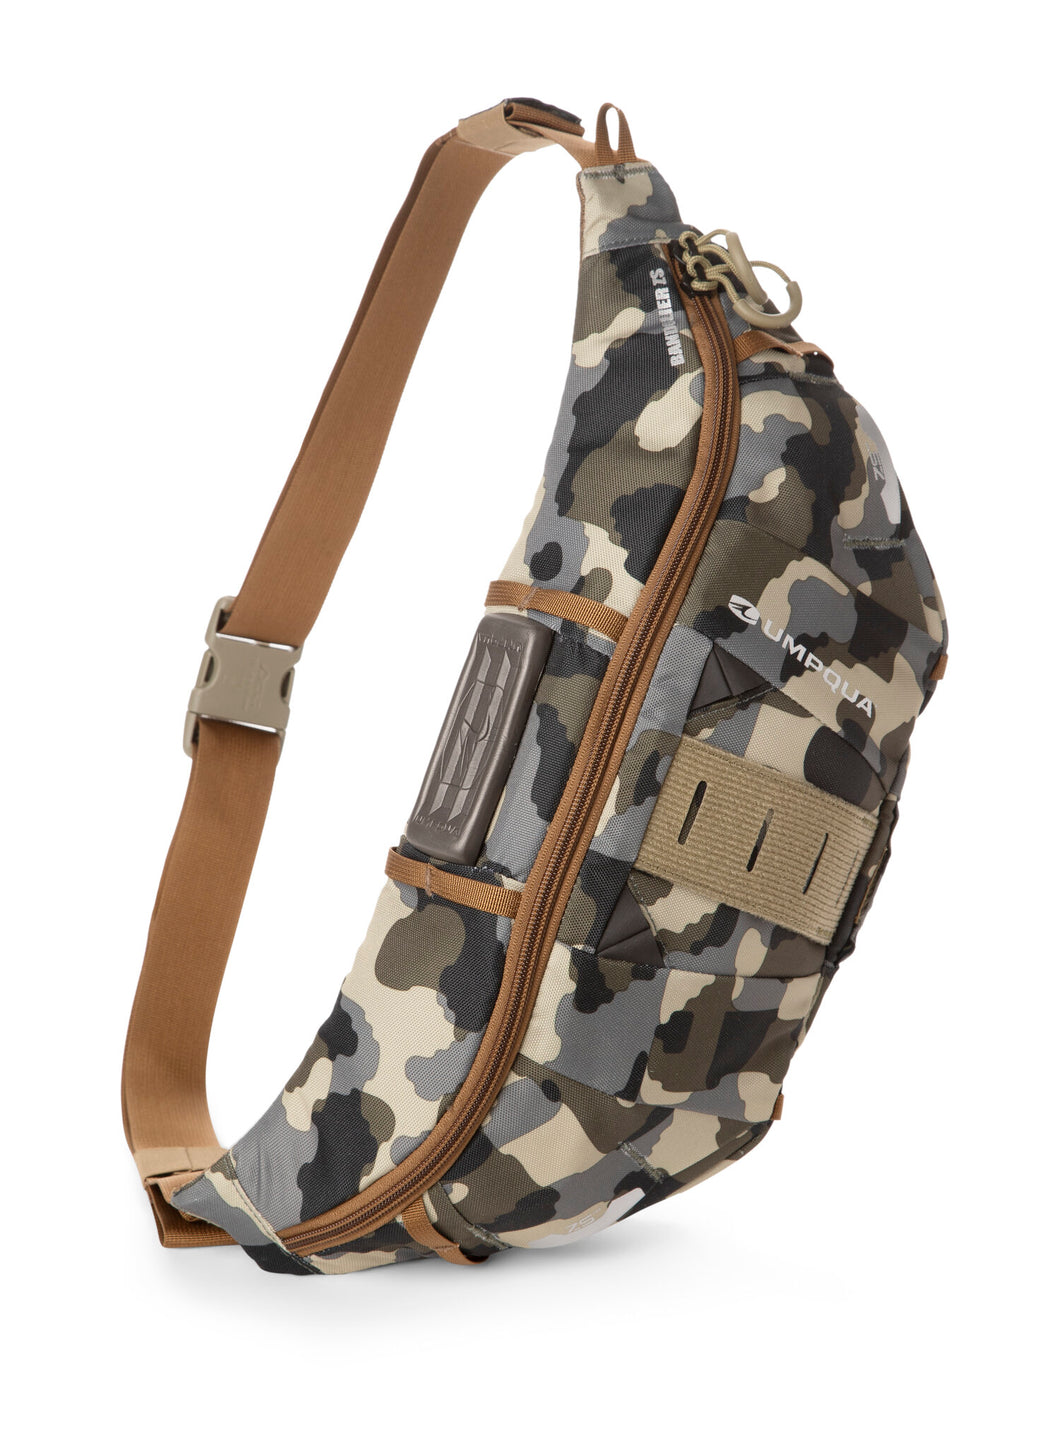 Bandolier ZS2 Sling Pack